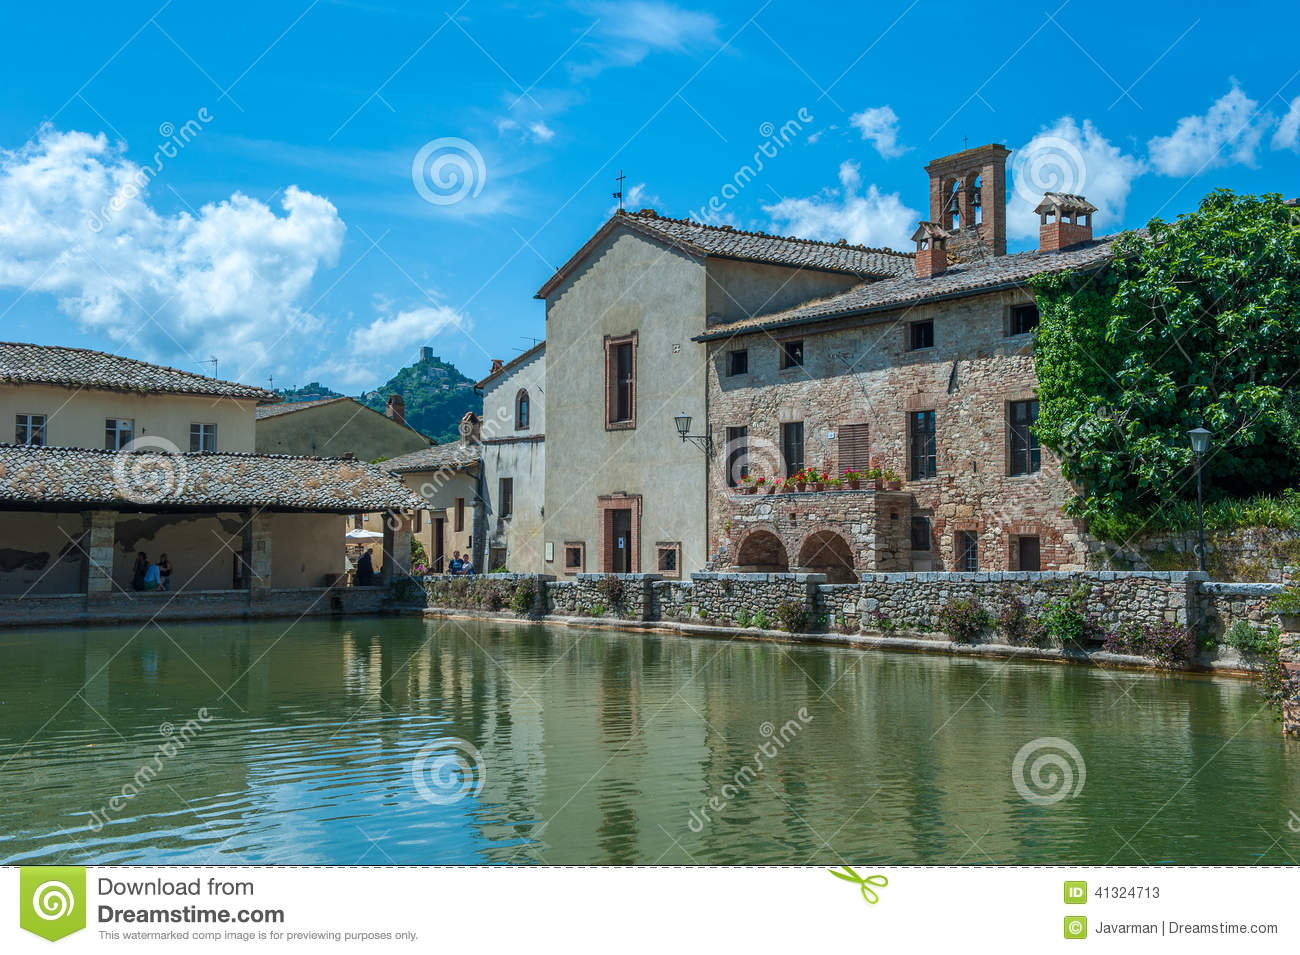 Ancient Swimming Pool With Thermal Water In Bagno Vignoni, Tusca Stock Photo ...